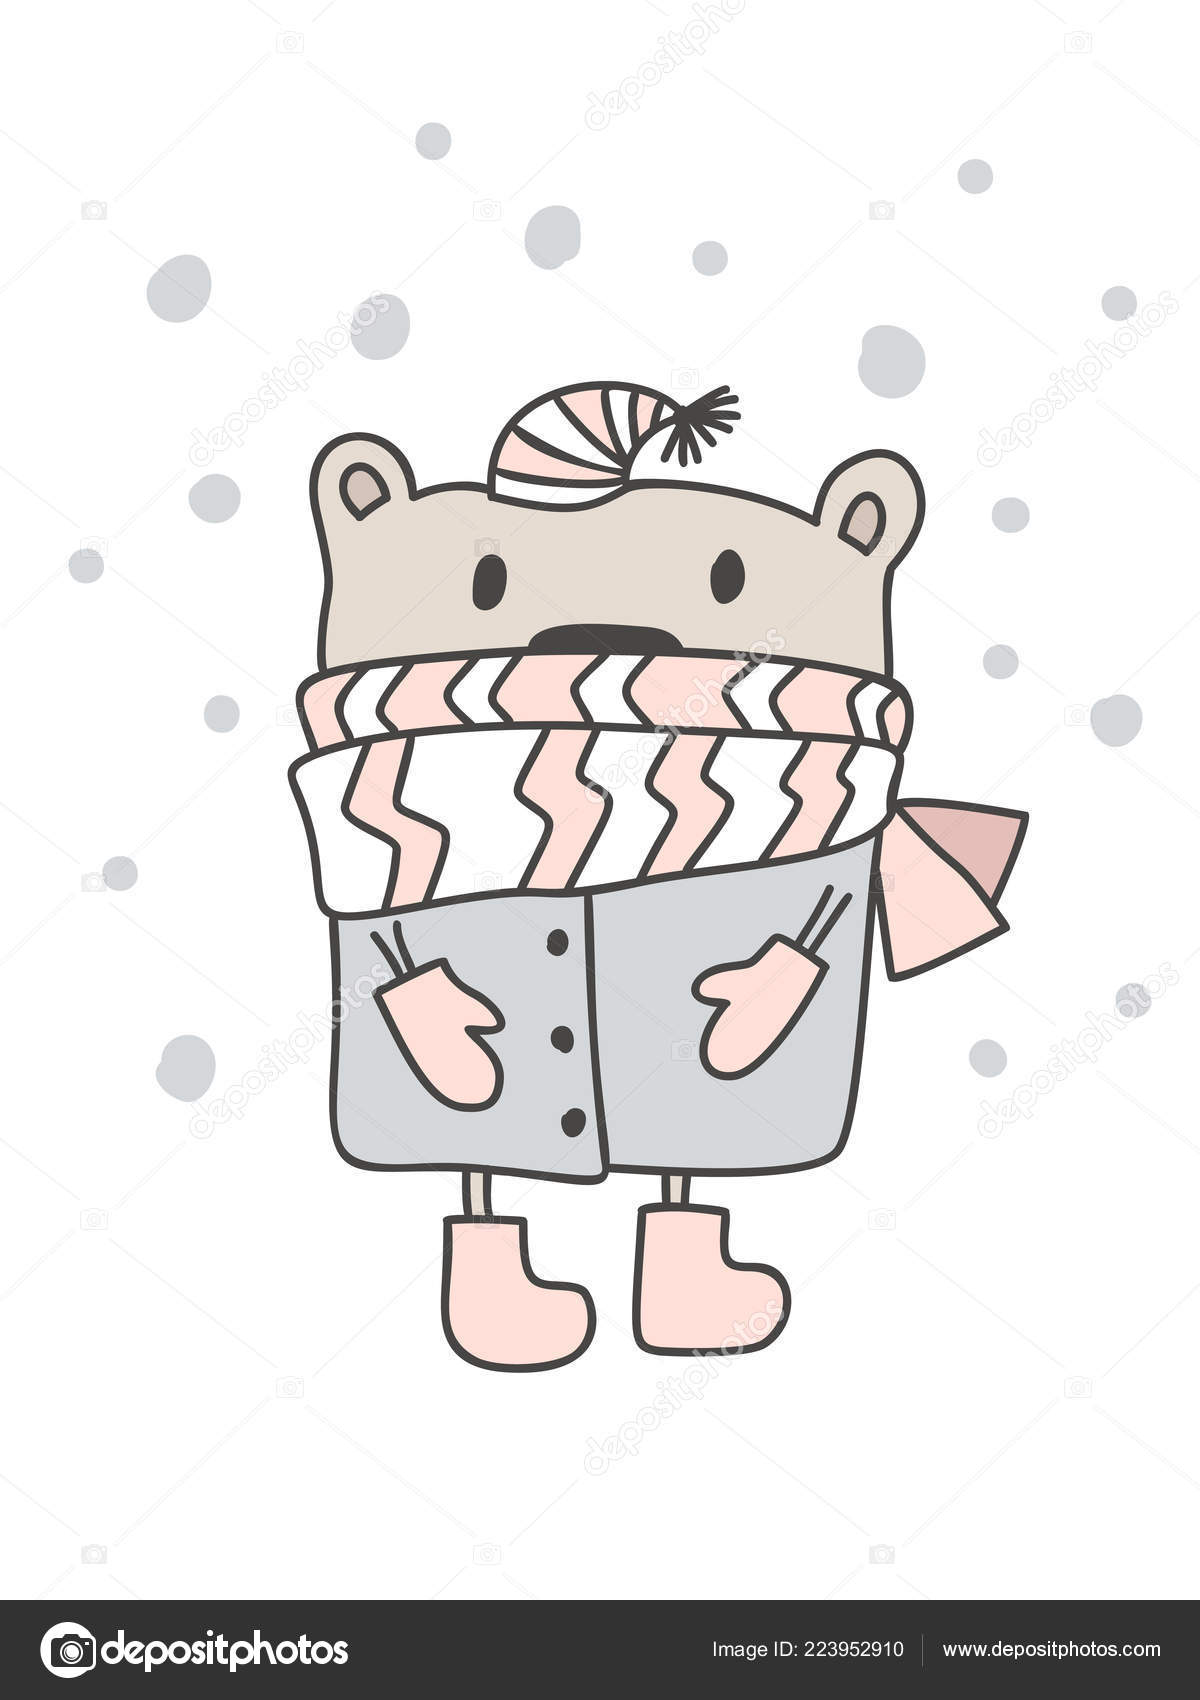 Christmas Scandinavian Style Design Hand Drawn Vector Illustration Of A Cute Funny Winter Bear In A Muffler Going For A Walk Isolated Objects On White Background Concept For Kids Apparel Nursery